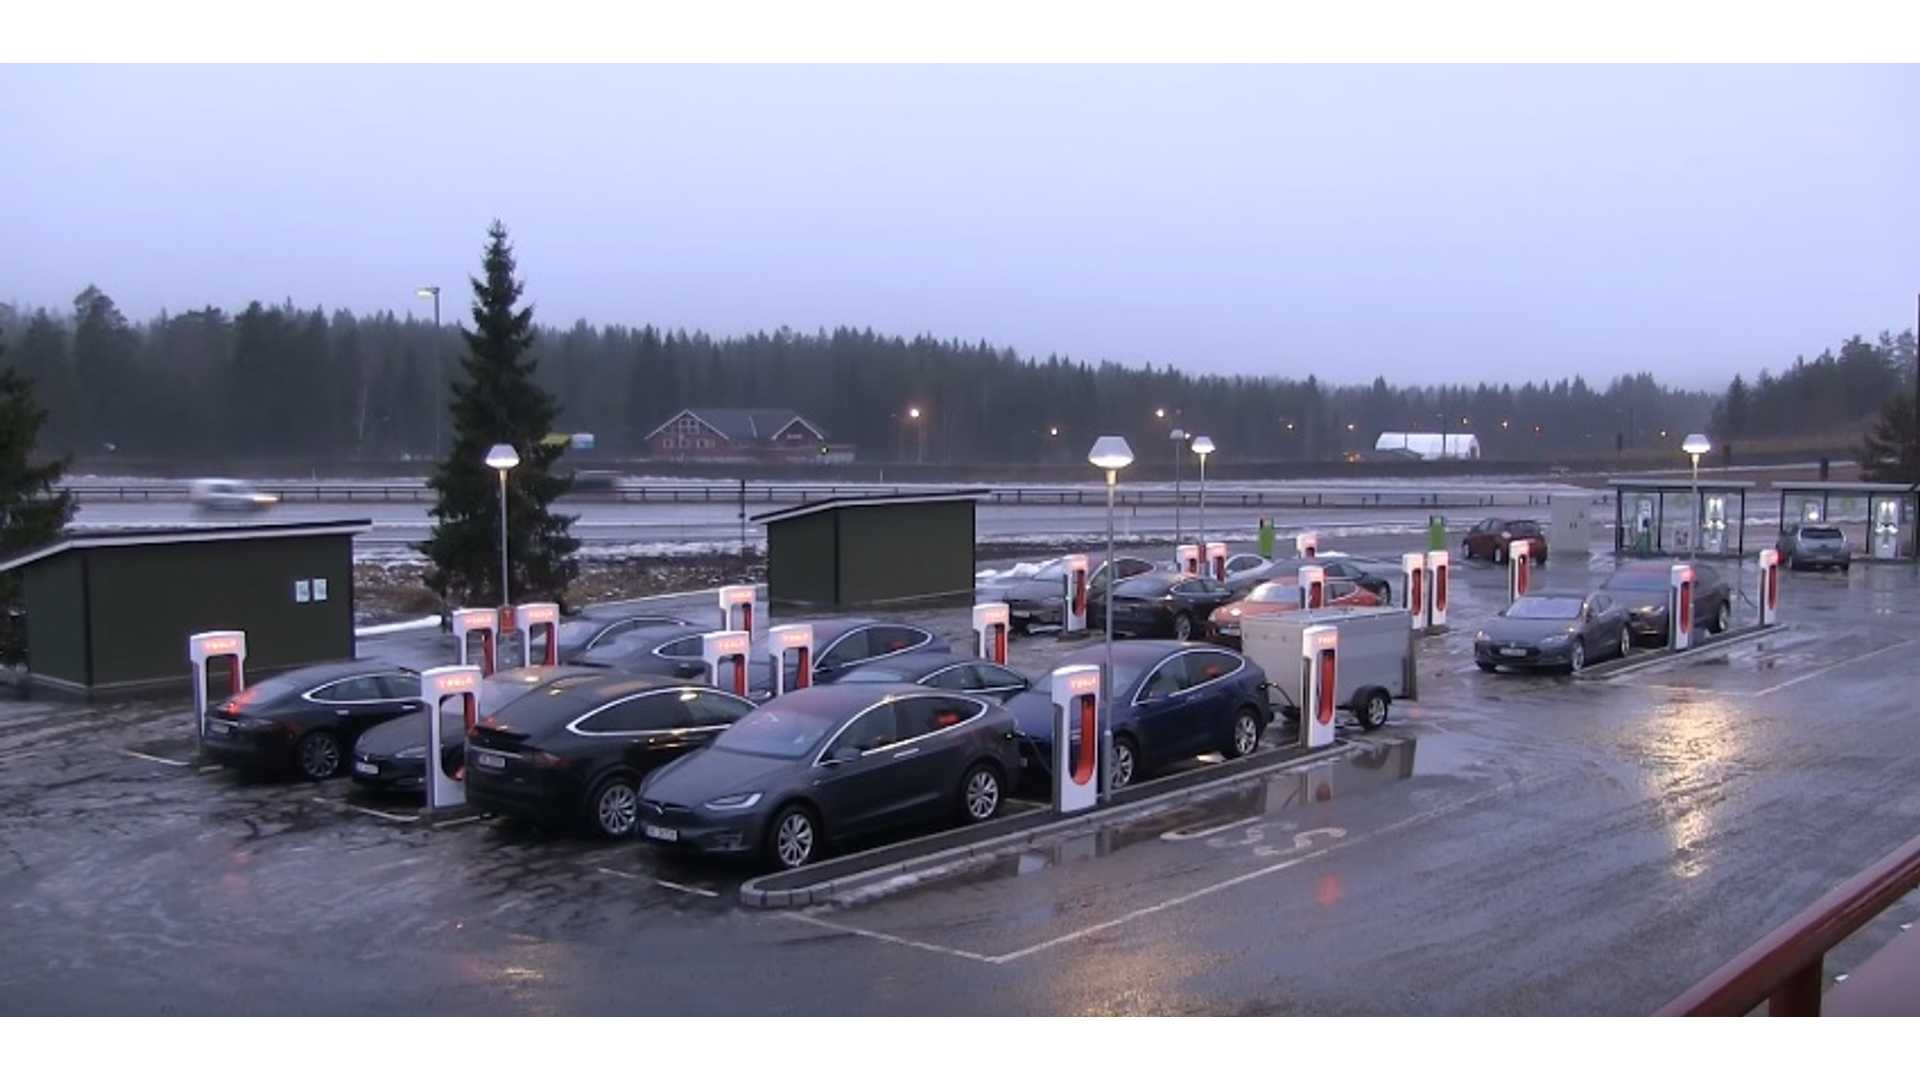 Timelapse Video Of Busy Supercharger Site 1920x1080